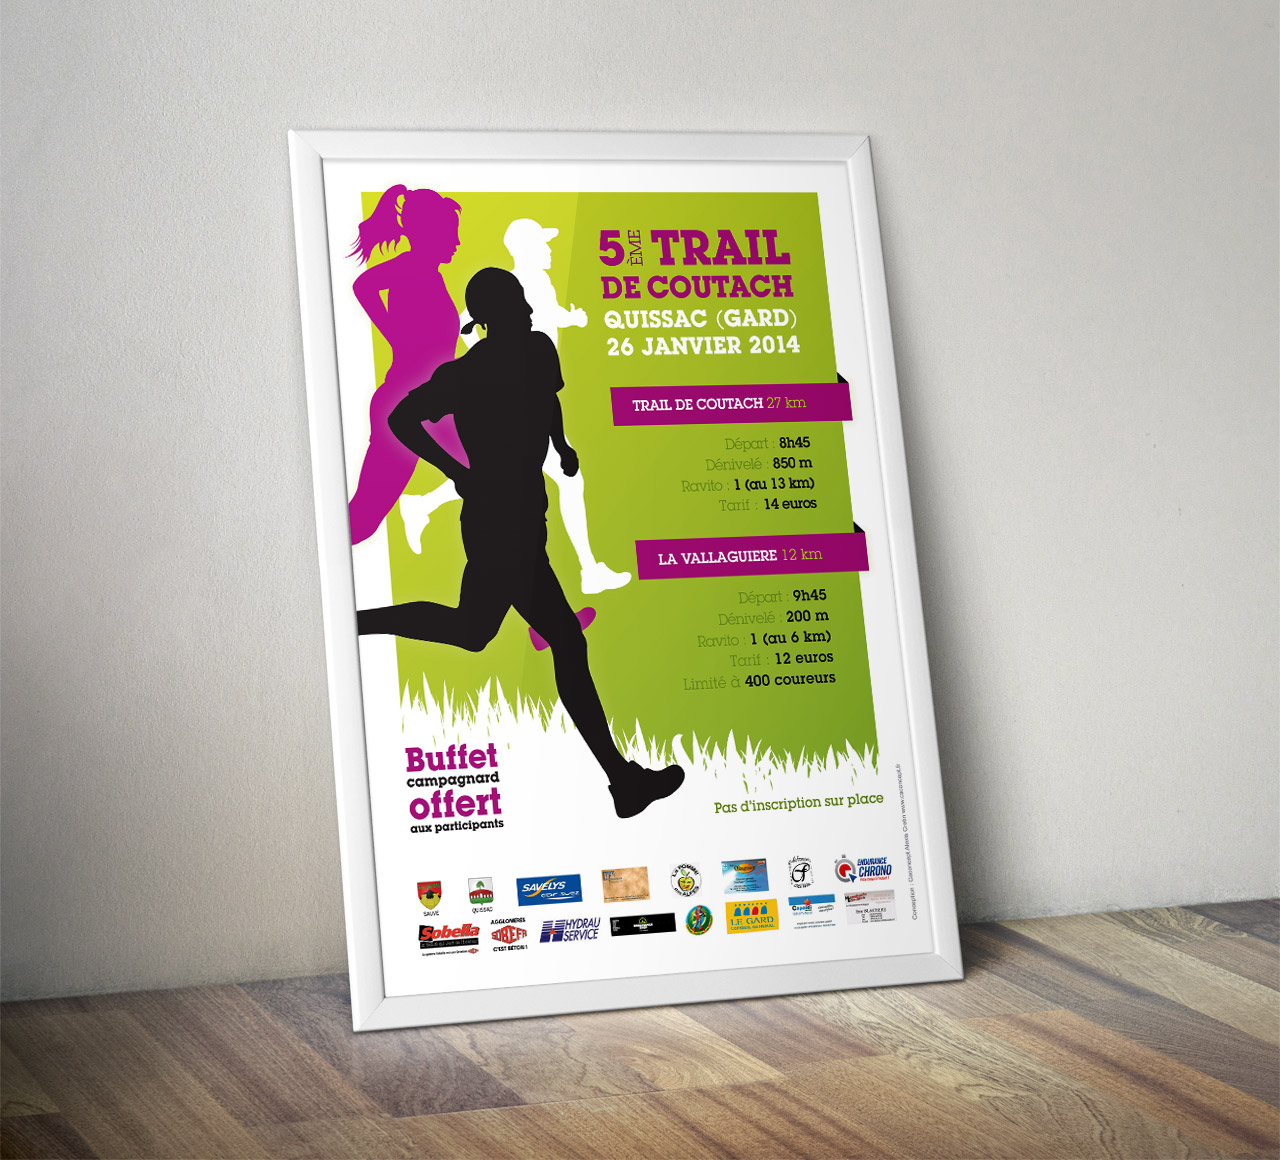 trail-de-coutach-affiche-creation-communication-caconcept-alexis-cretin-graphiste